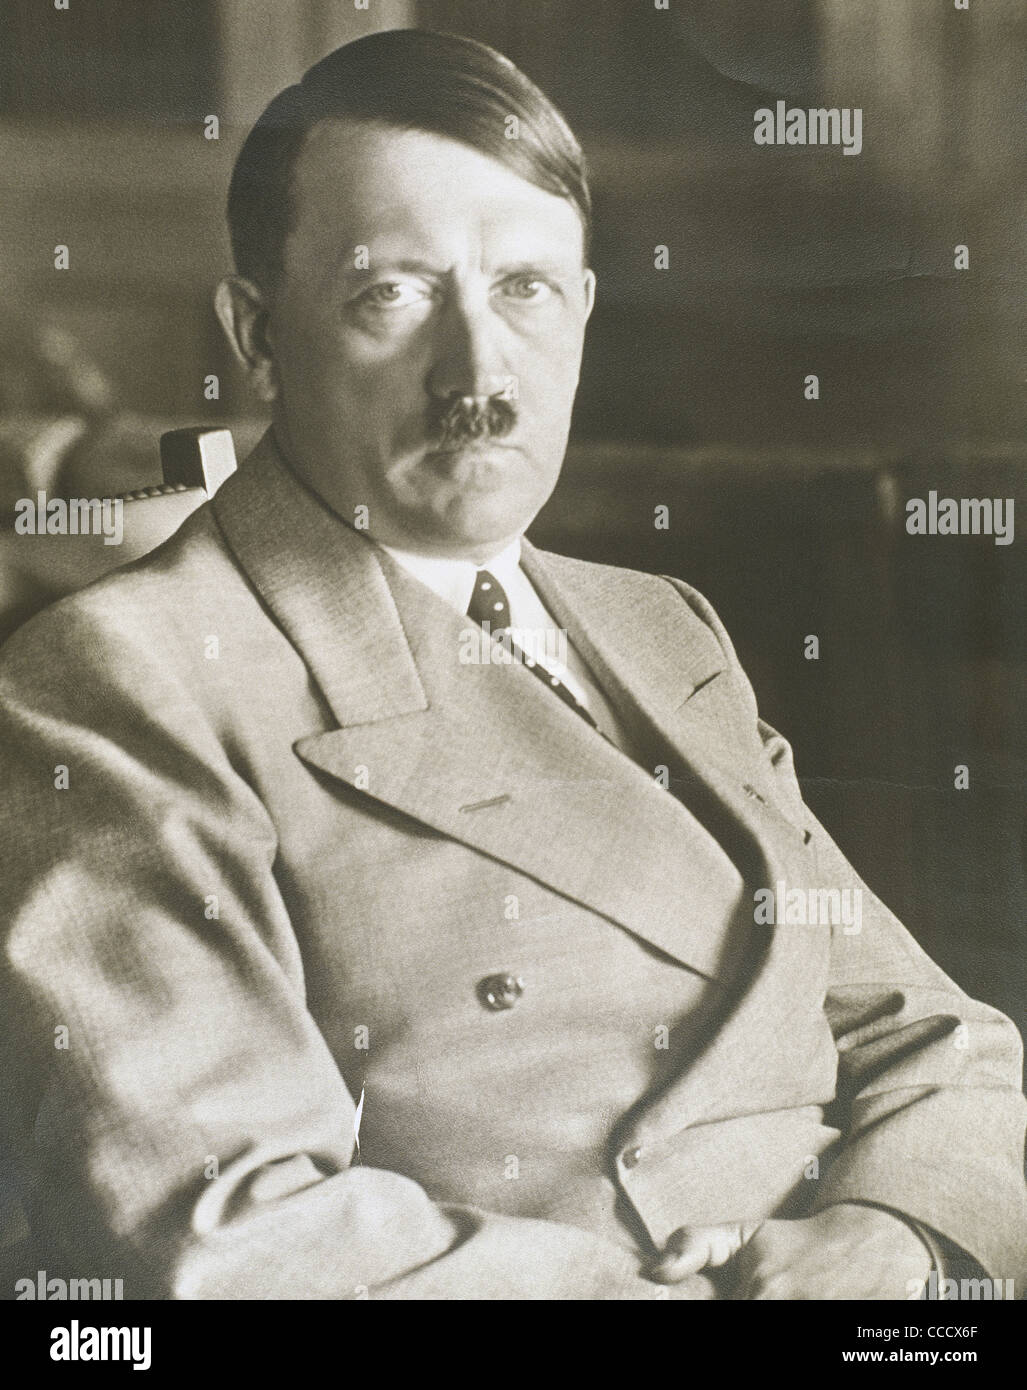 Adolf Hitler (1889-1945). Leader of the National Socialist German Workers Party. Photography. - Stock Image